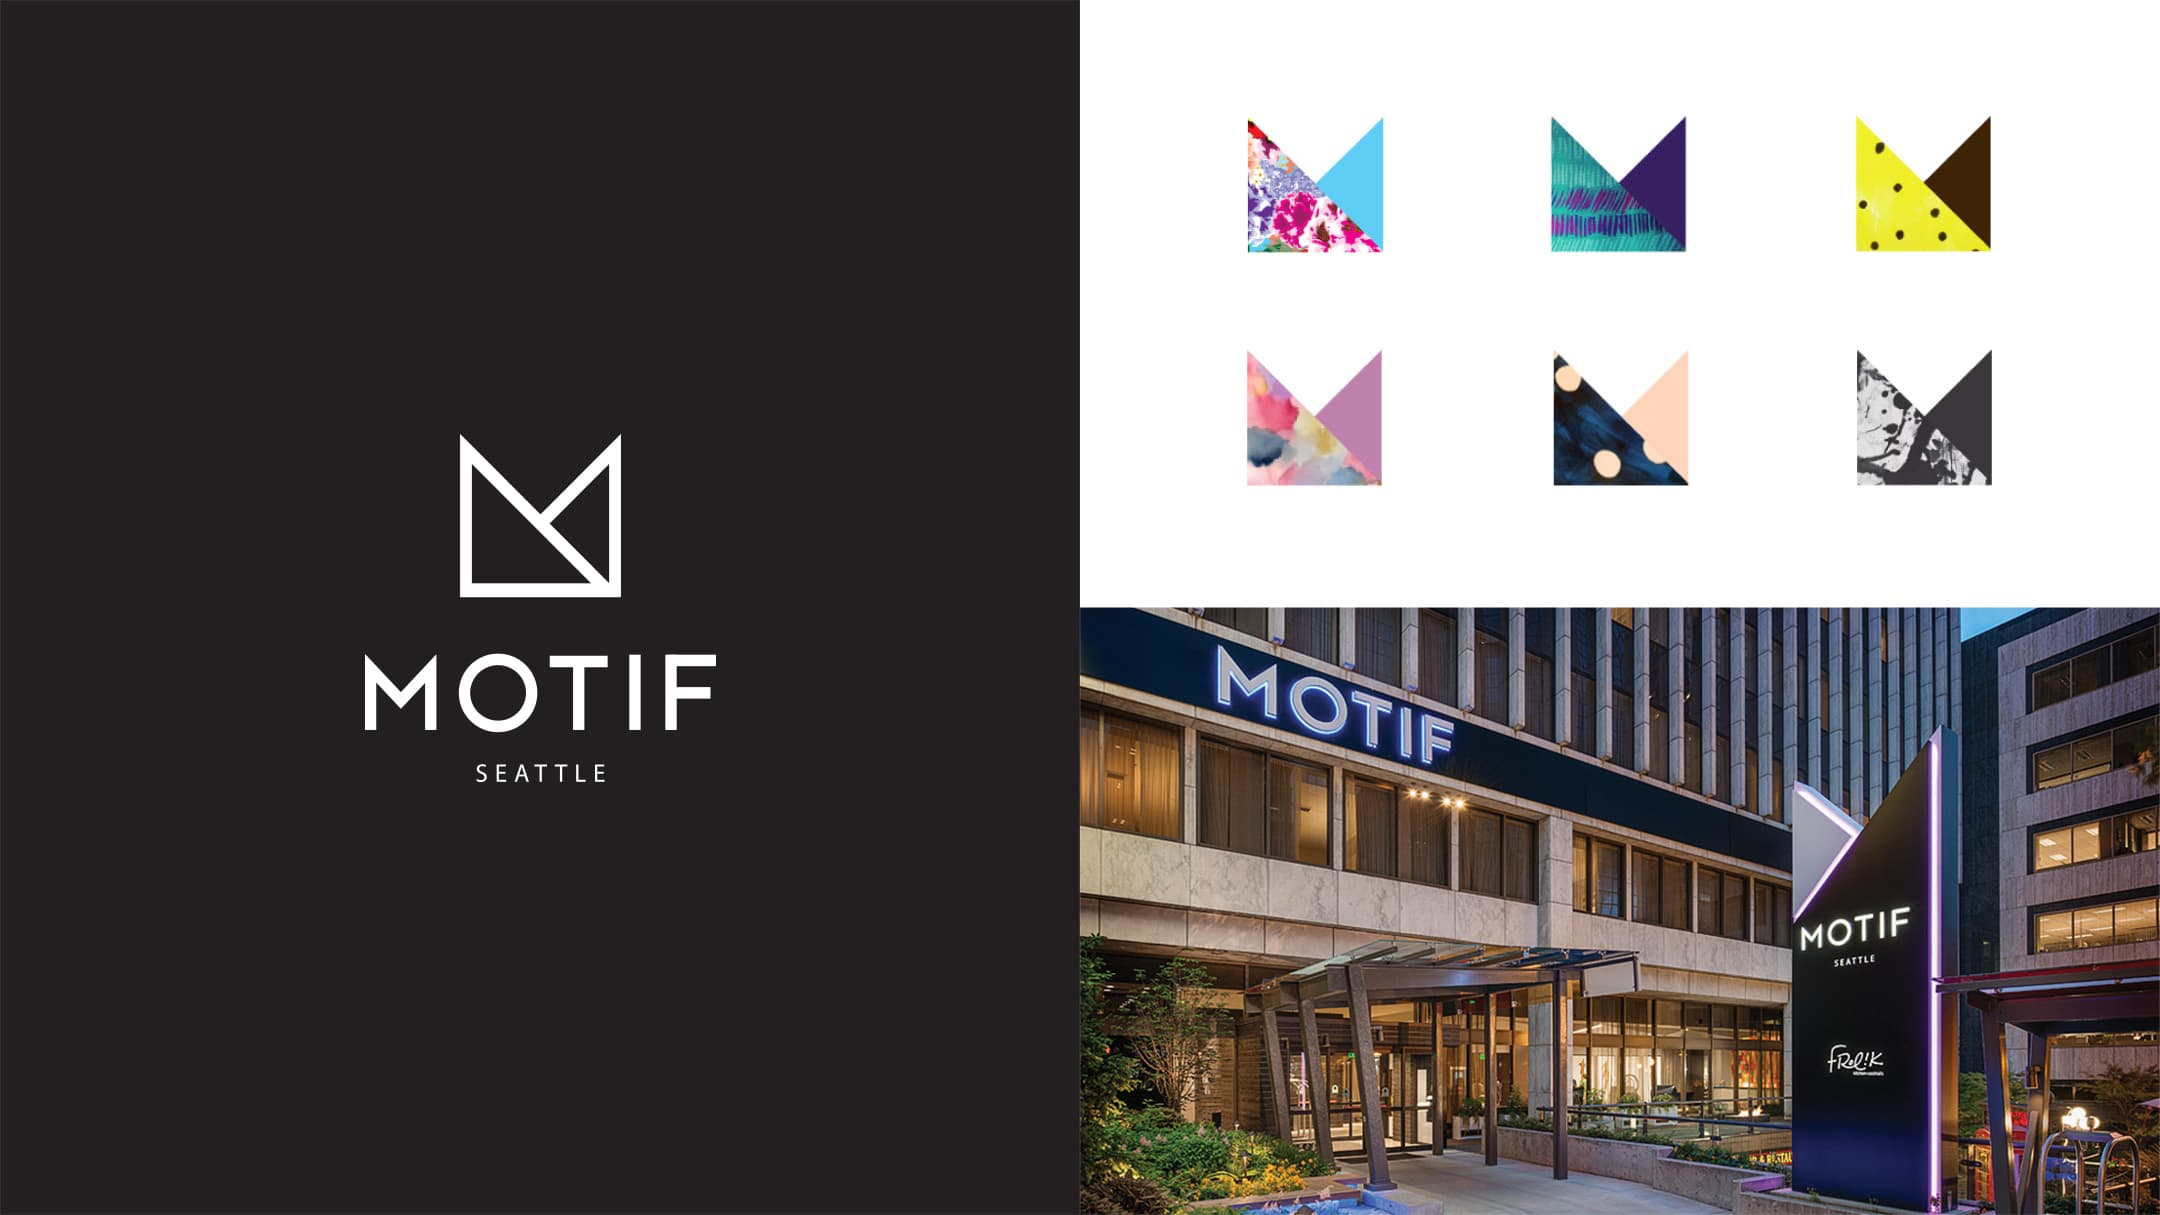 Motif Seattle logo design and signage - elements of our hotel branding project for them.